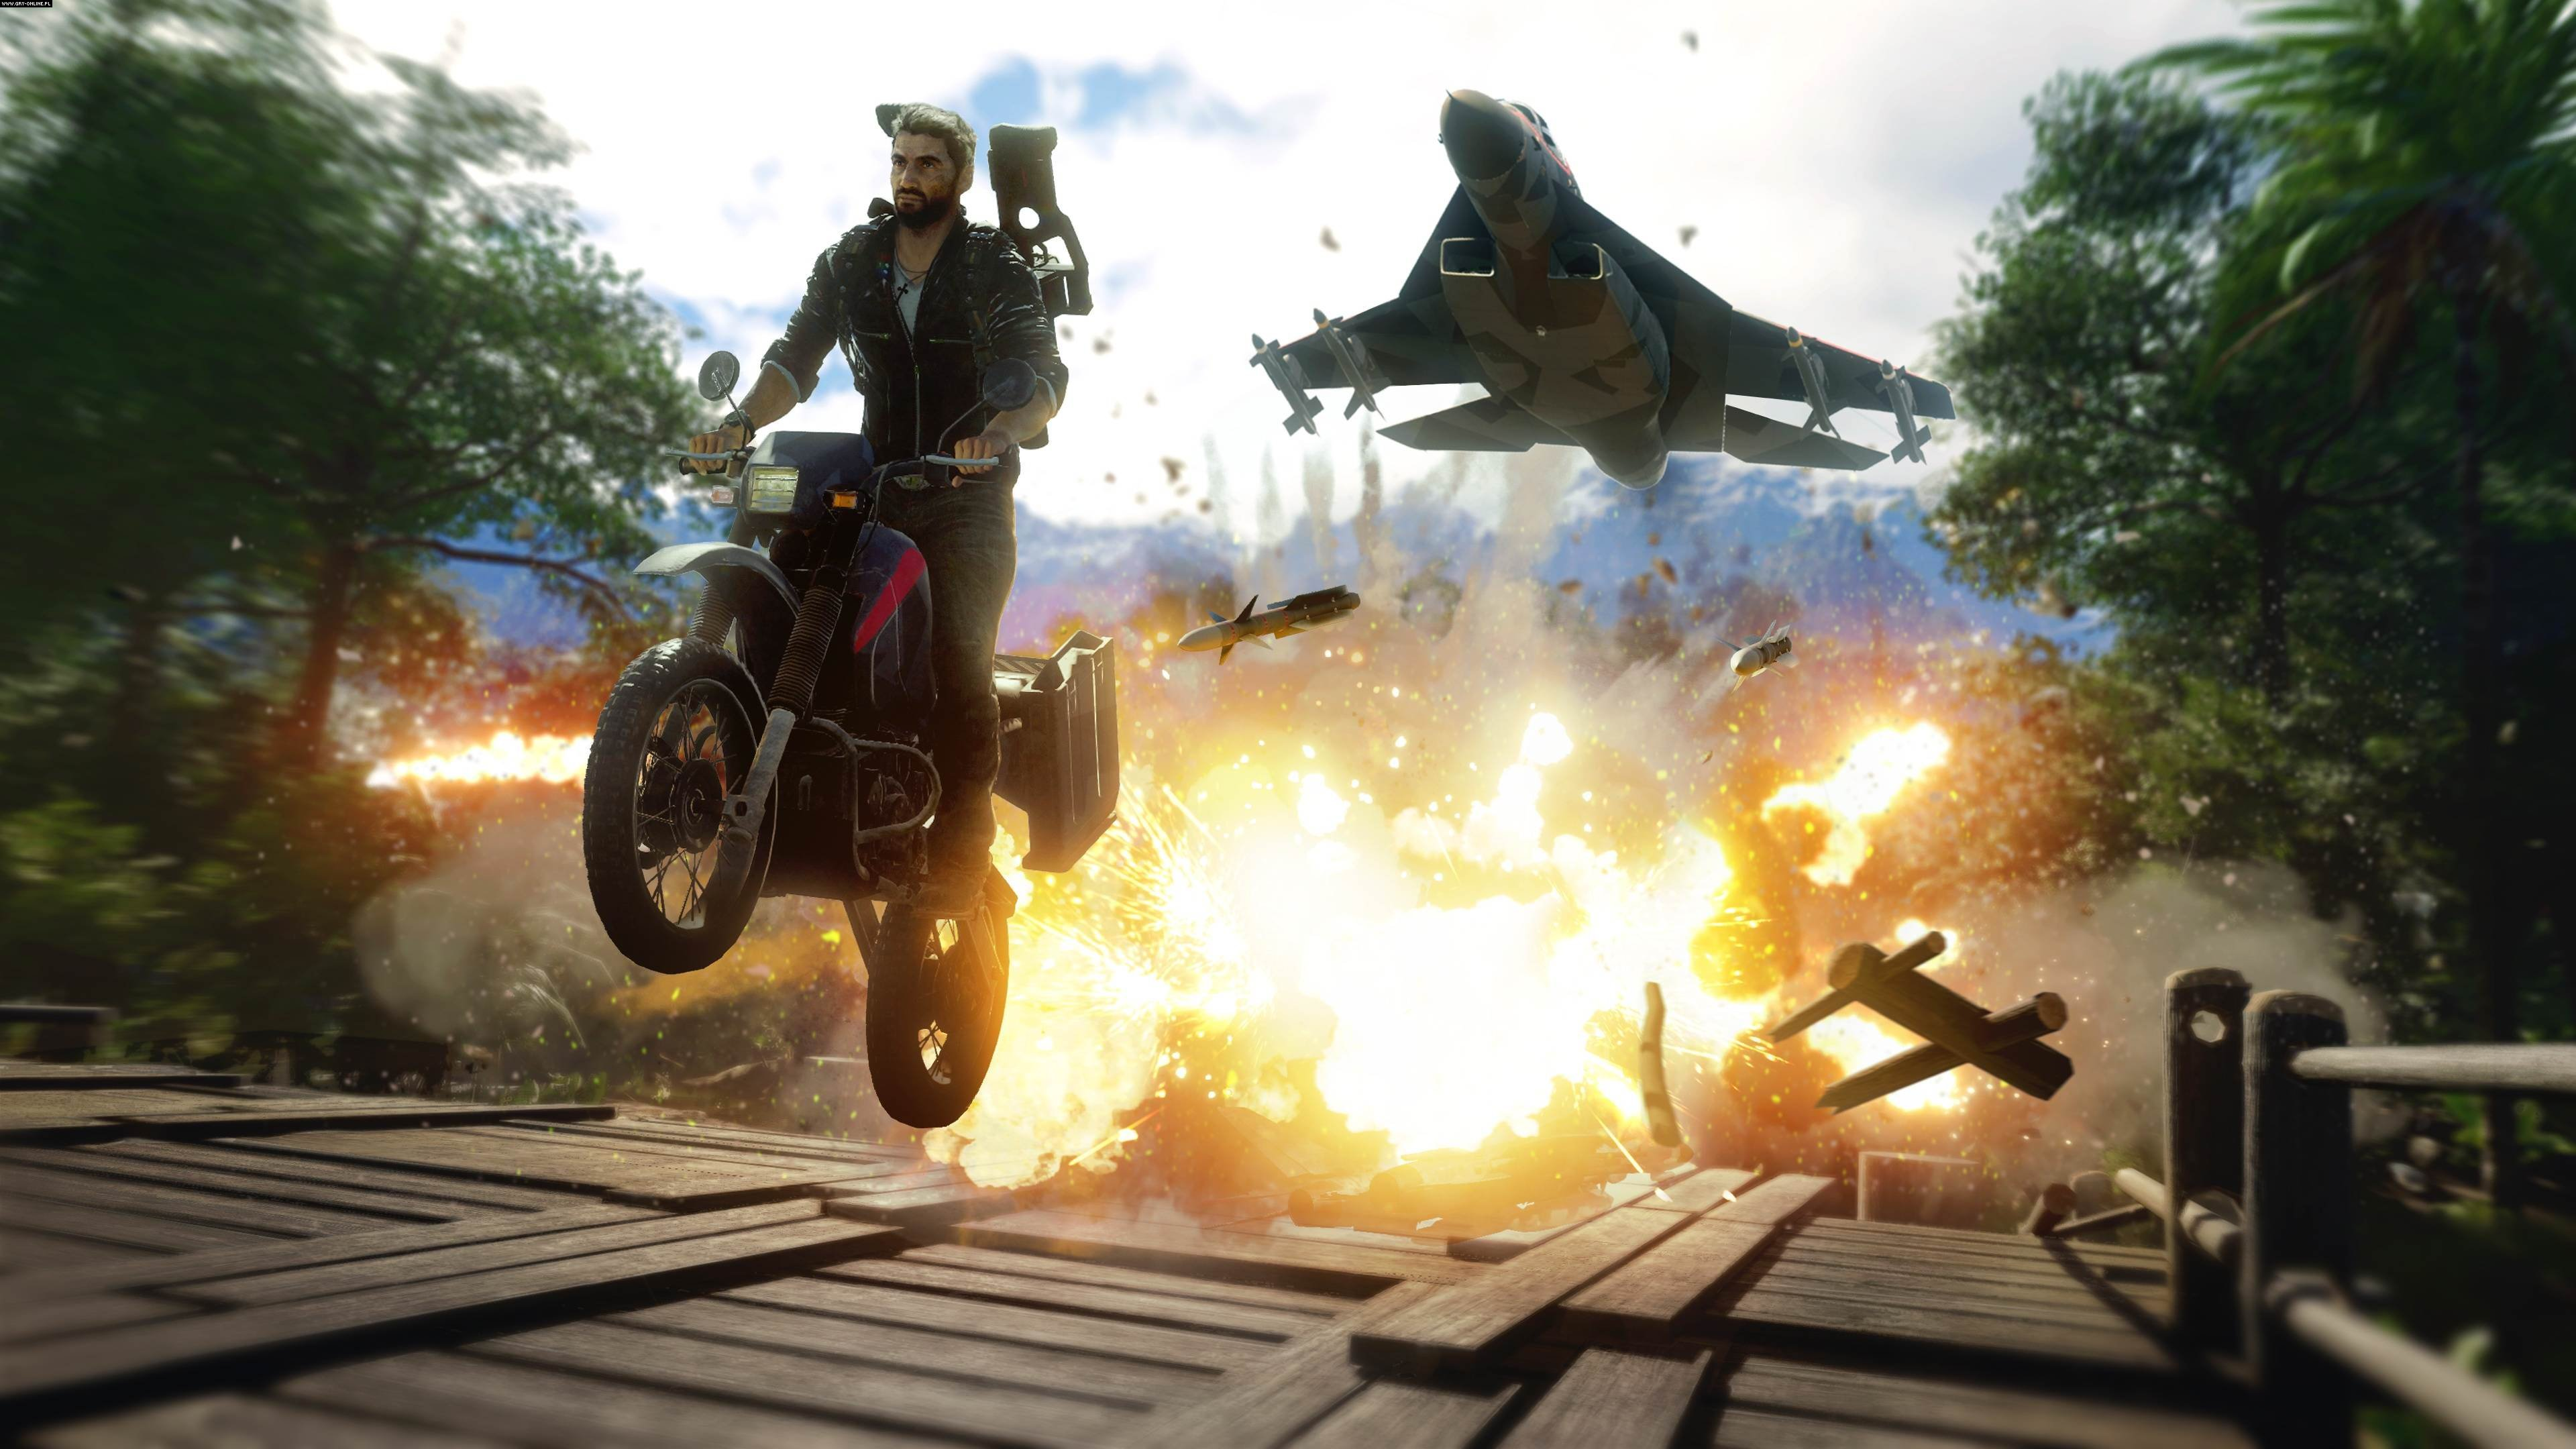 Just Cause 4 PC, XONE, PS4 Games Image 11/12, Avalanche Studios, Square-Enix / Eidos